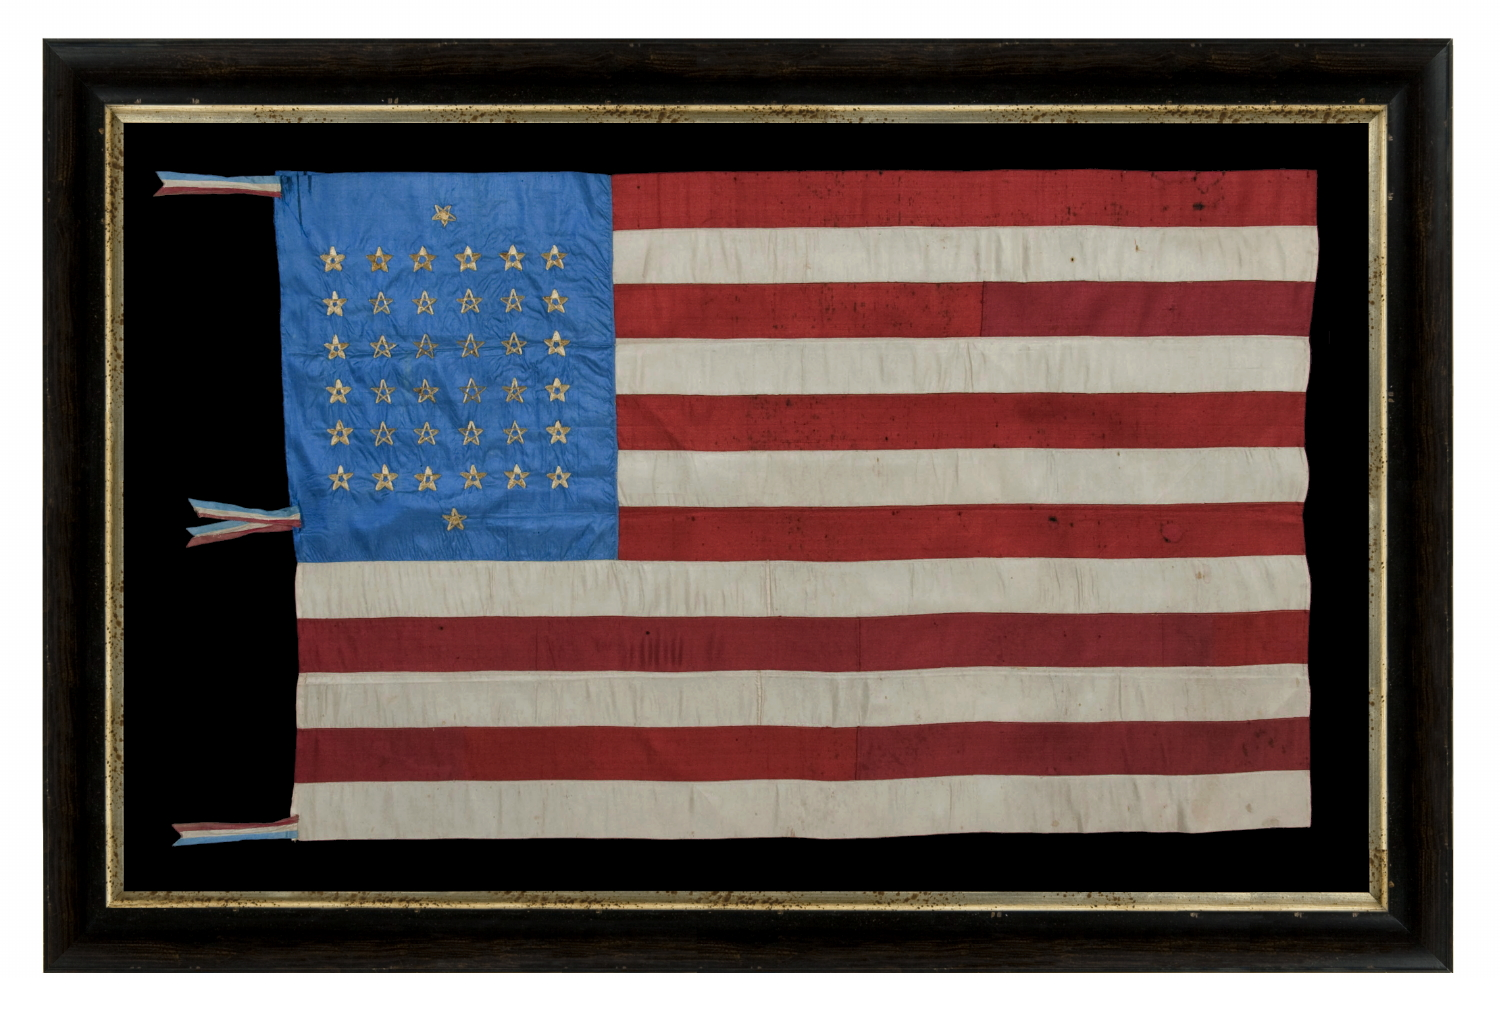 abcfa538a31 Jeff Bridgman Antique Flags And Painted Furniture 38 Star Silk. 38 Star Flag  Antique Image. Large Framed 38 Star Flag Hand Sewn Stars Sku 11336 Sold